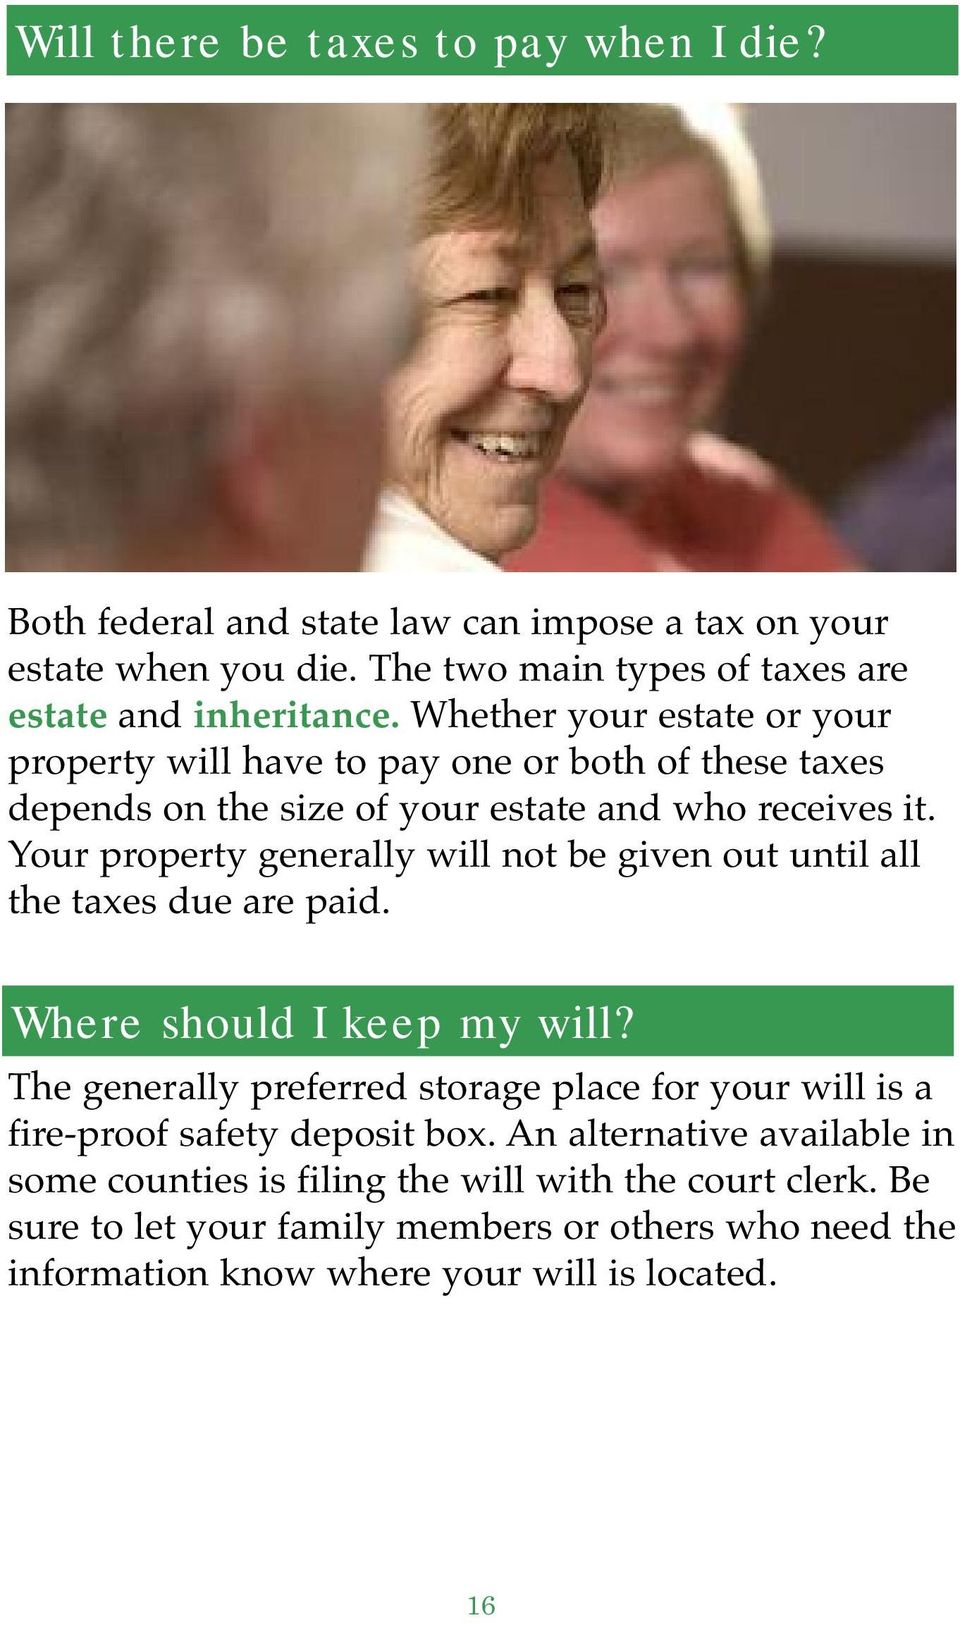 Your property generally will not be given out until all the taxes due are paid. Where should I keep my will?